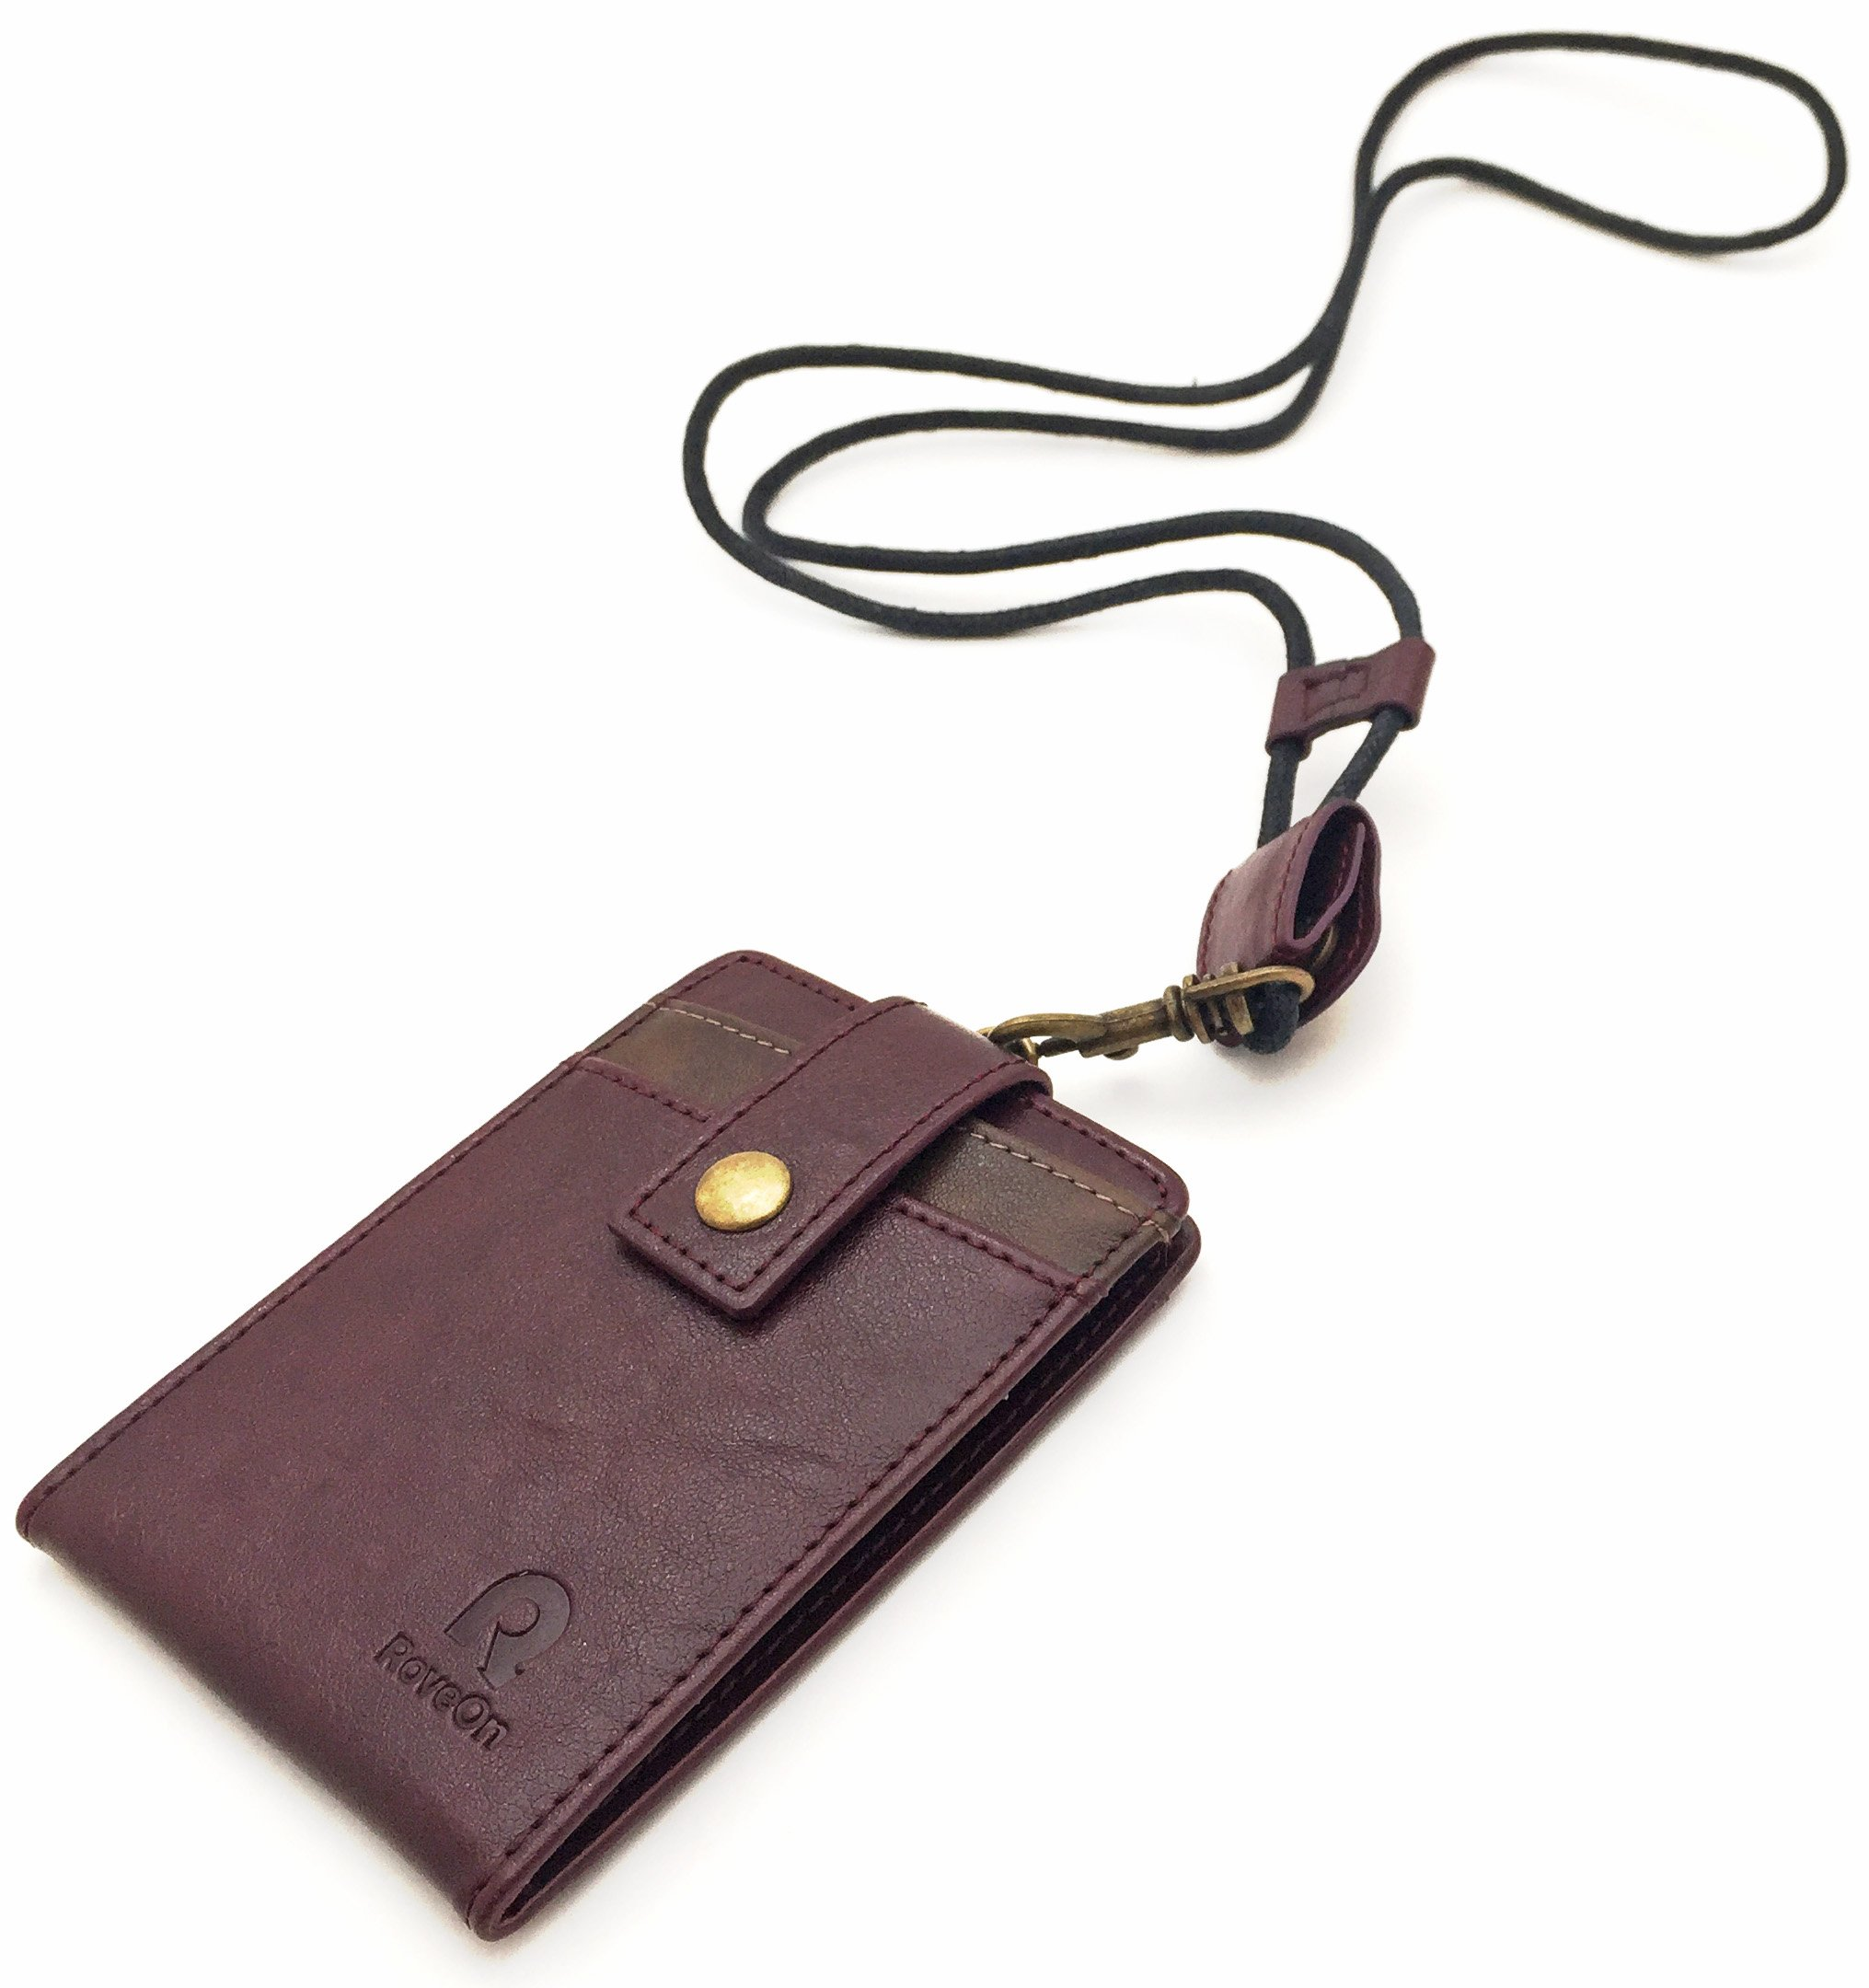 Rove On Neck Wallet ID Badge Holder Lanyard, Burgundy